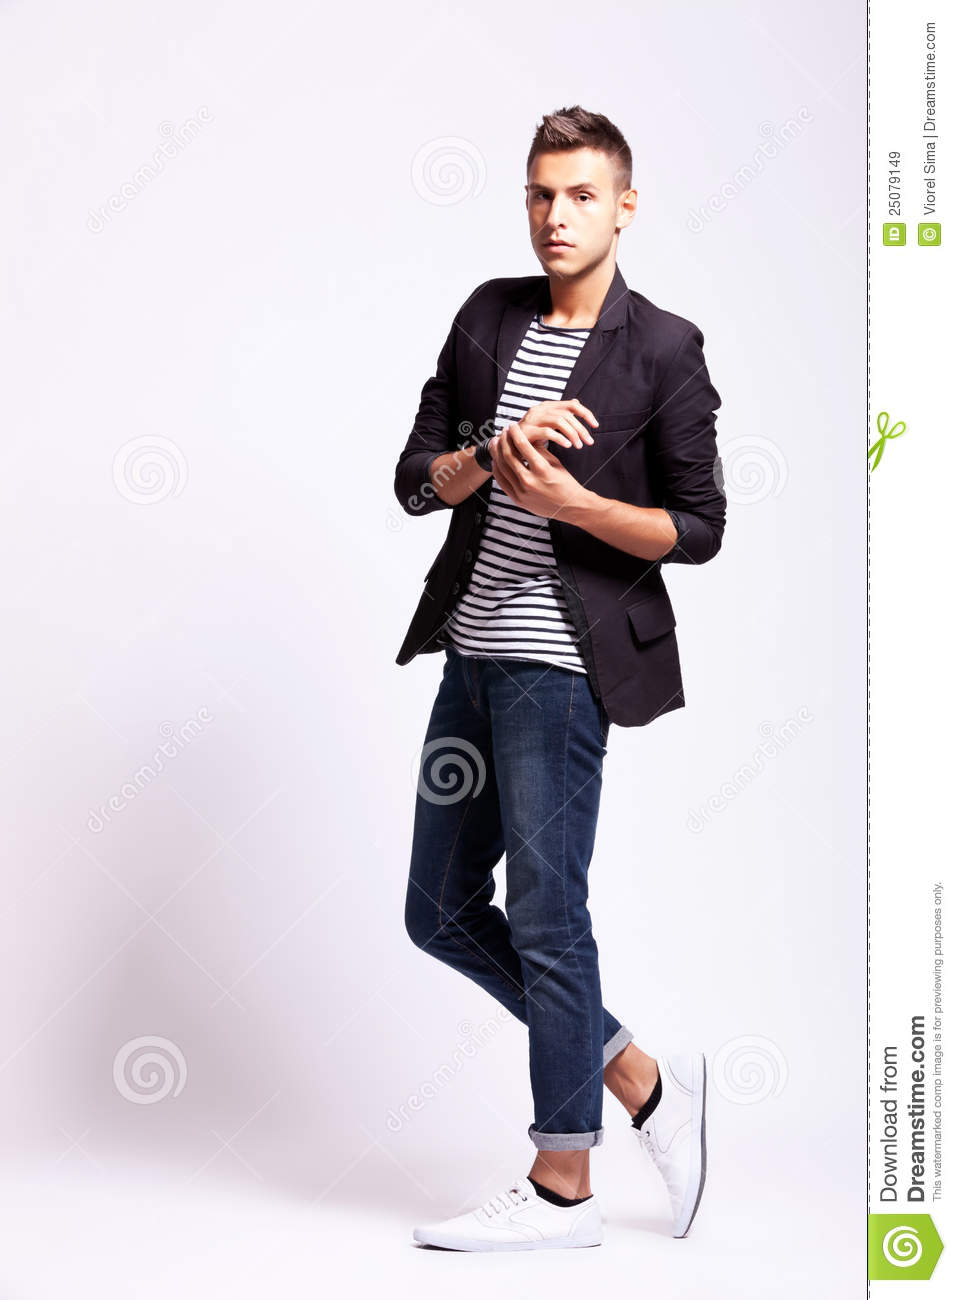 Fashion man in a pose royalty free stock images image 25079149